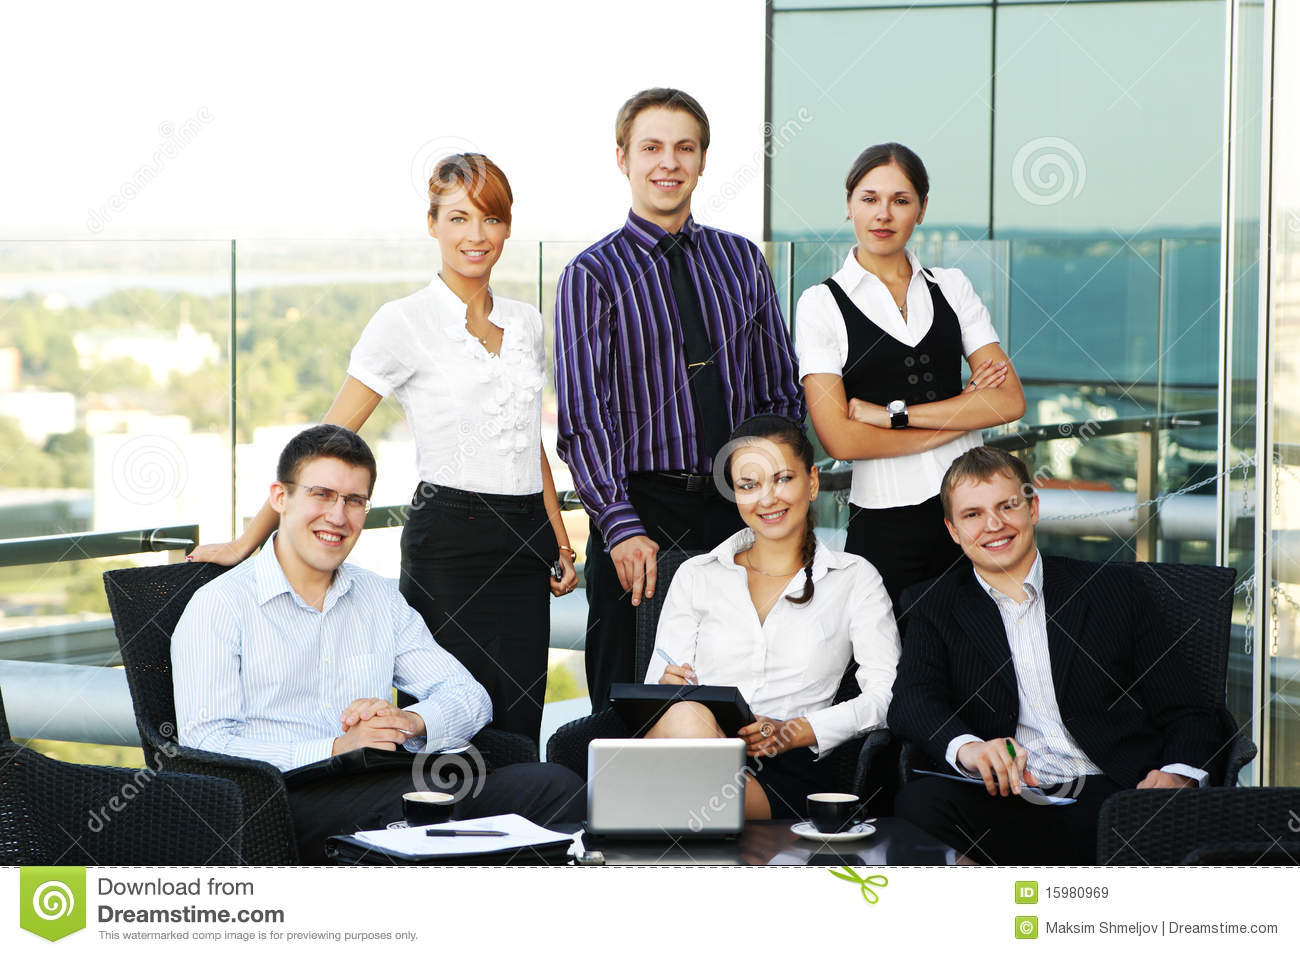 Six young business persons are having a meeting